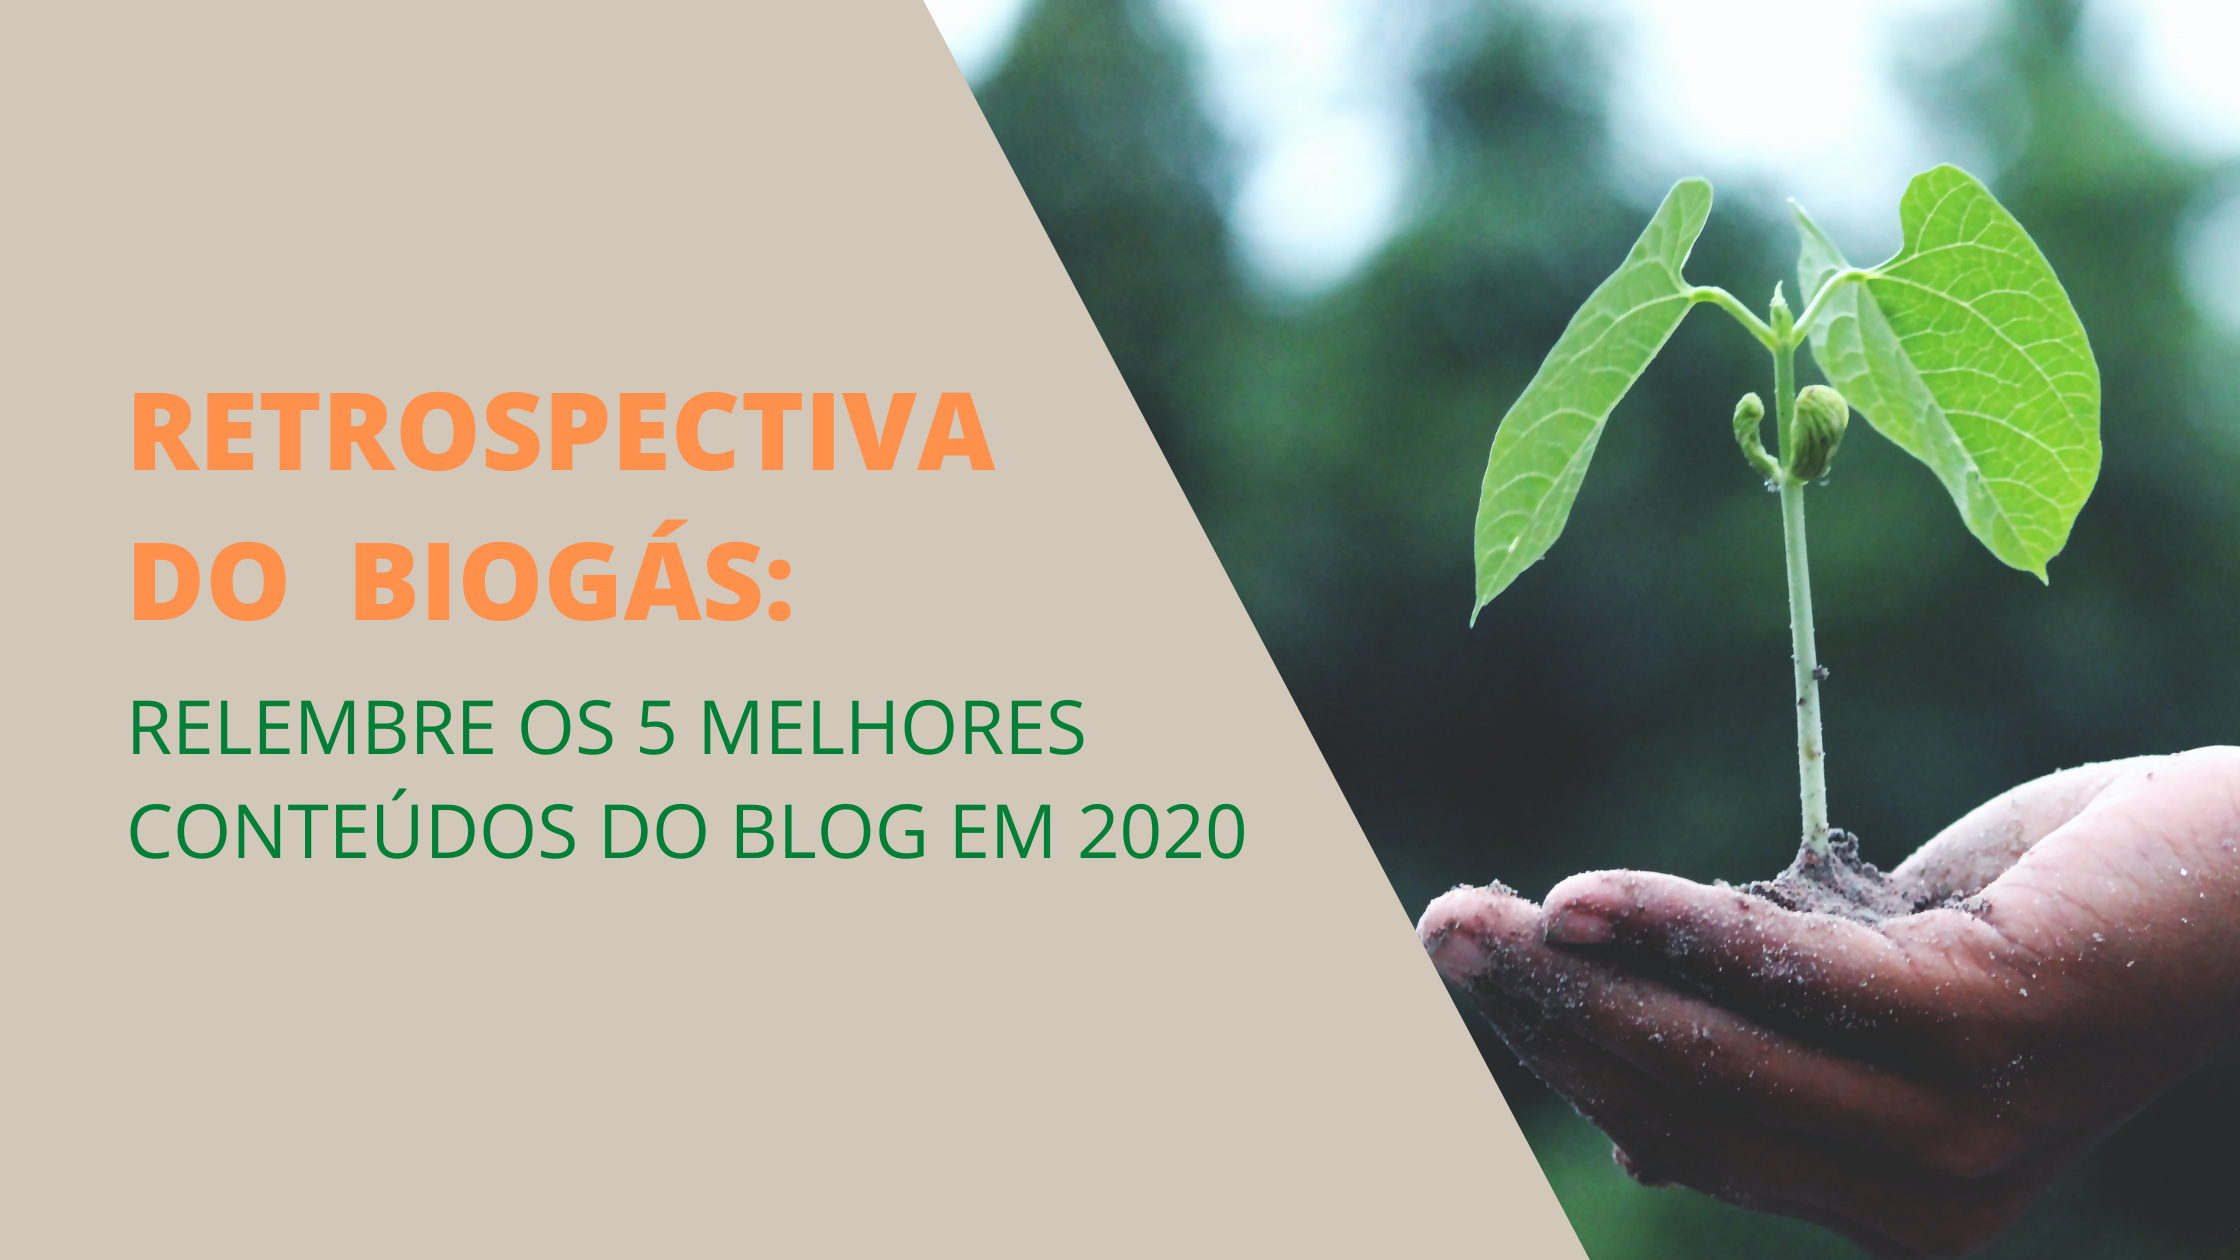 Retrospectiva do blog do biogás